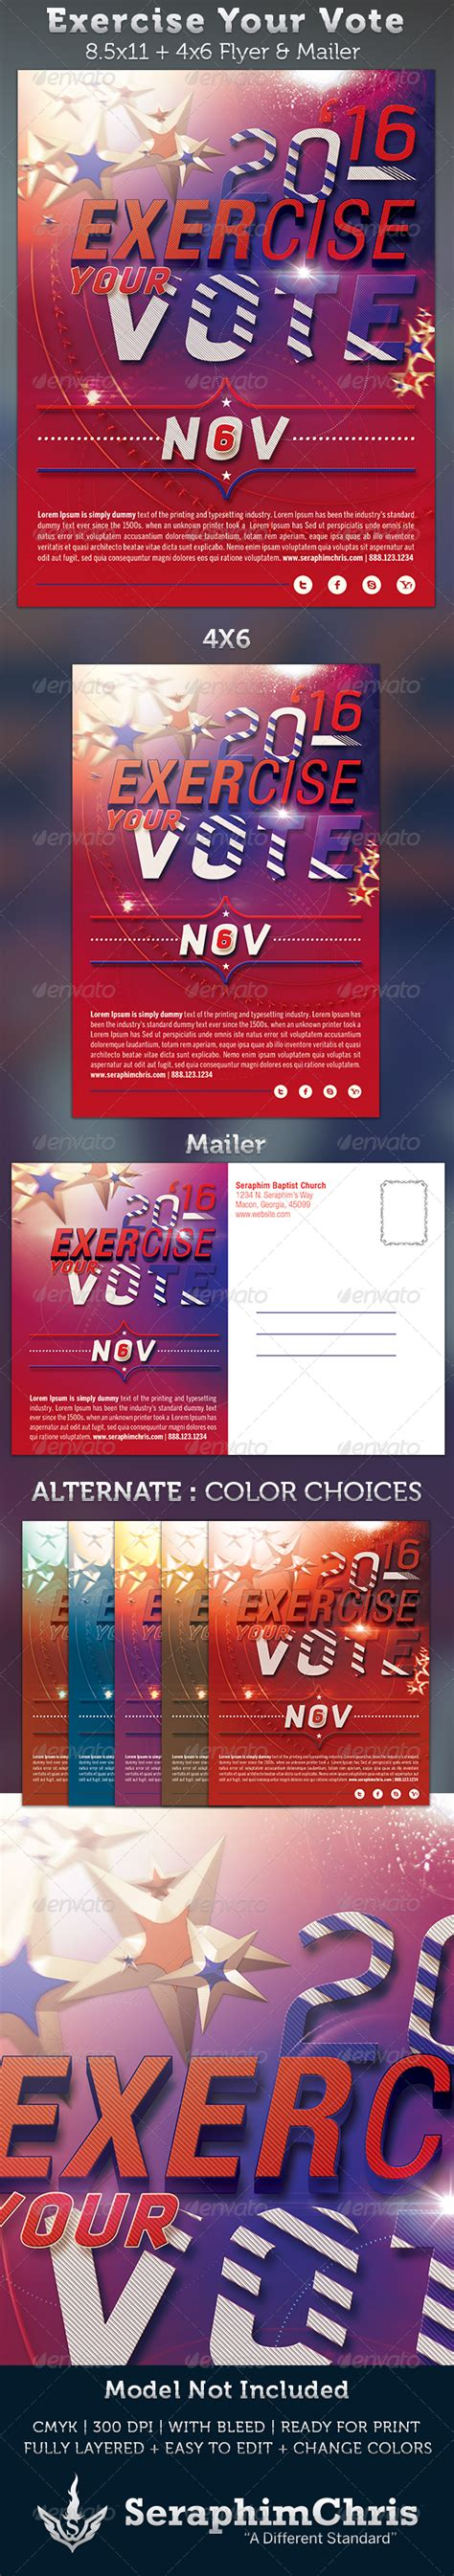 flyer design lynda lynda adobe after effects cs6 exercise files 187 maydesk com